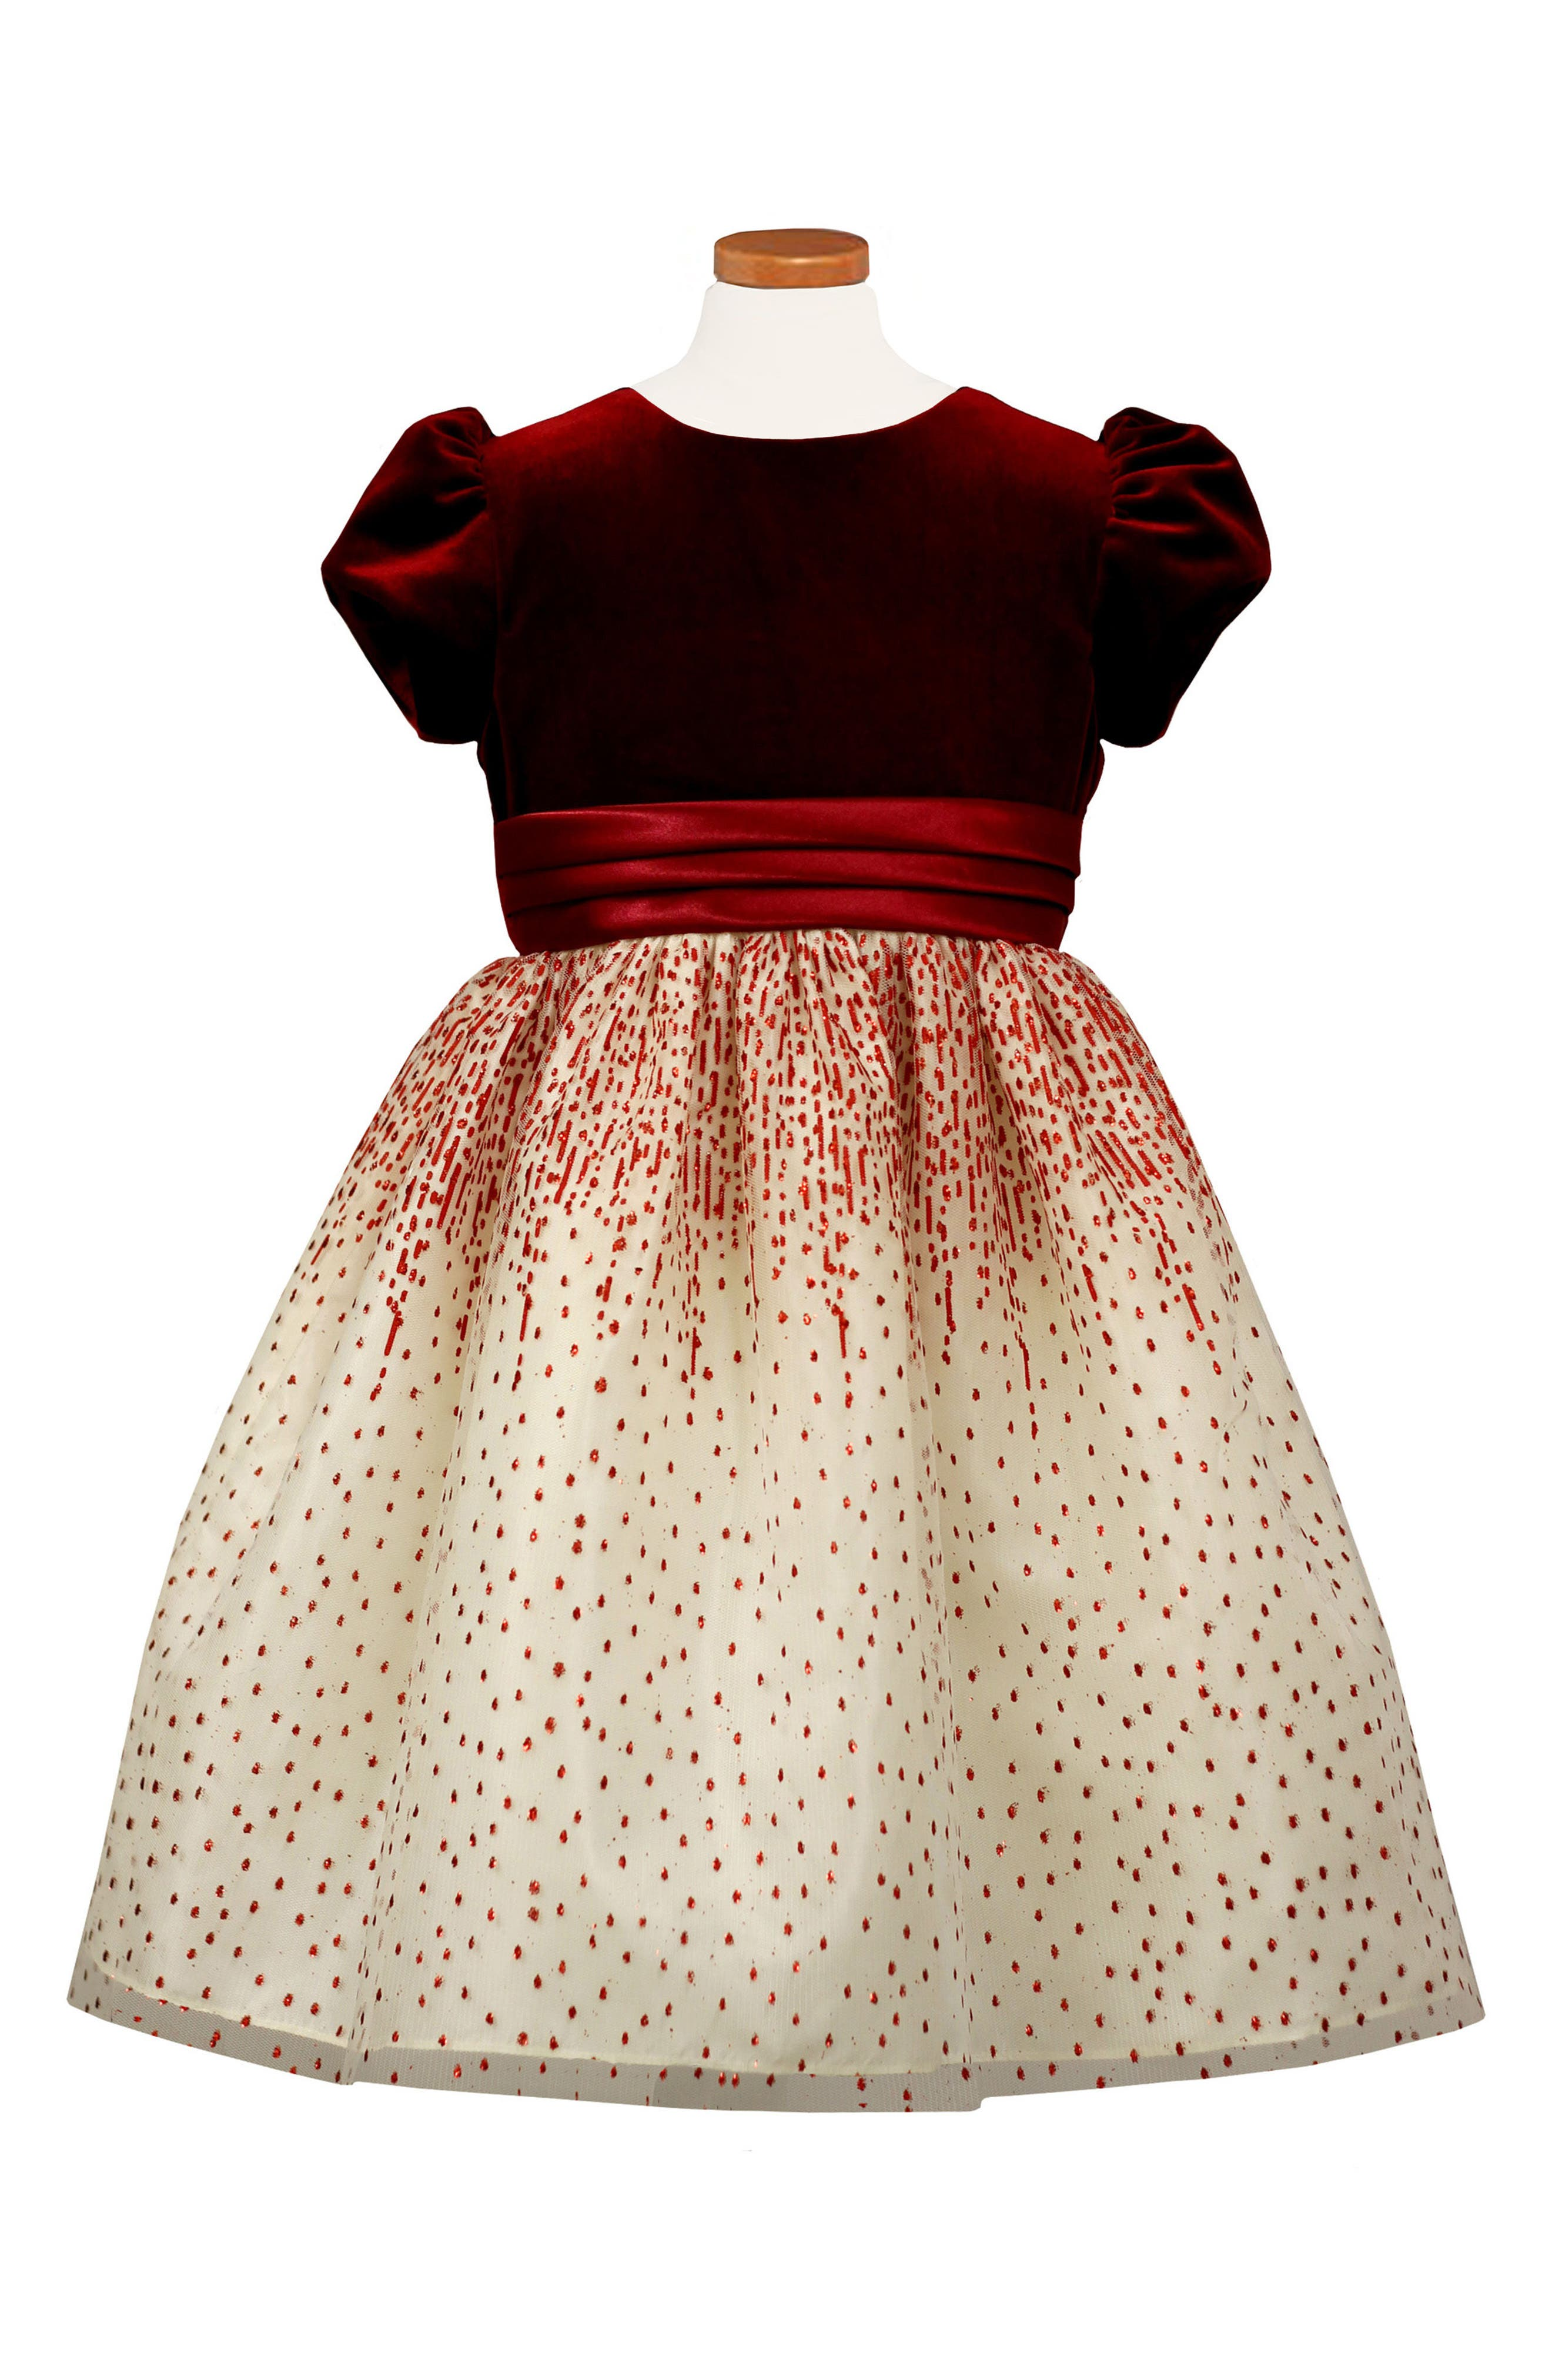 Sorbet Velvet Bodice Party Dress (Toddler Girls, Little Girls & Big Girls)